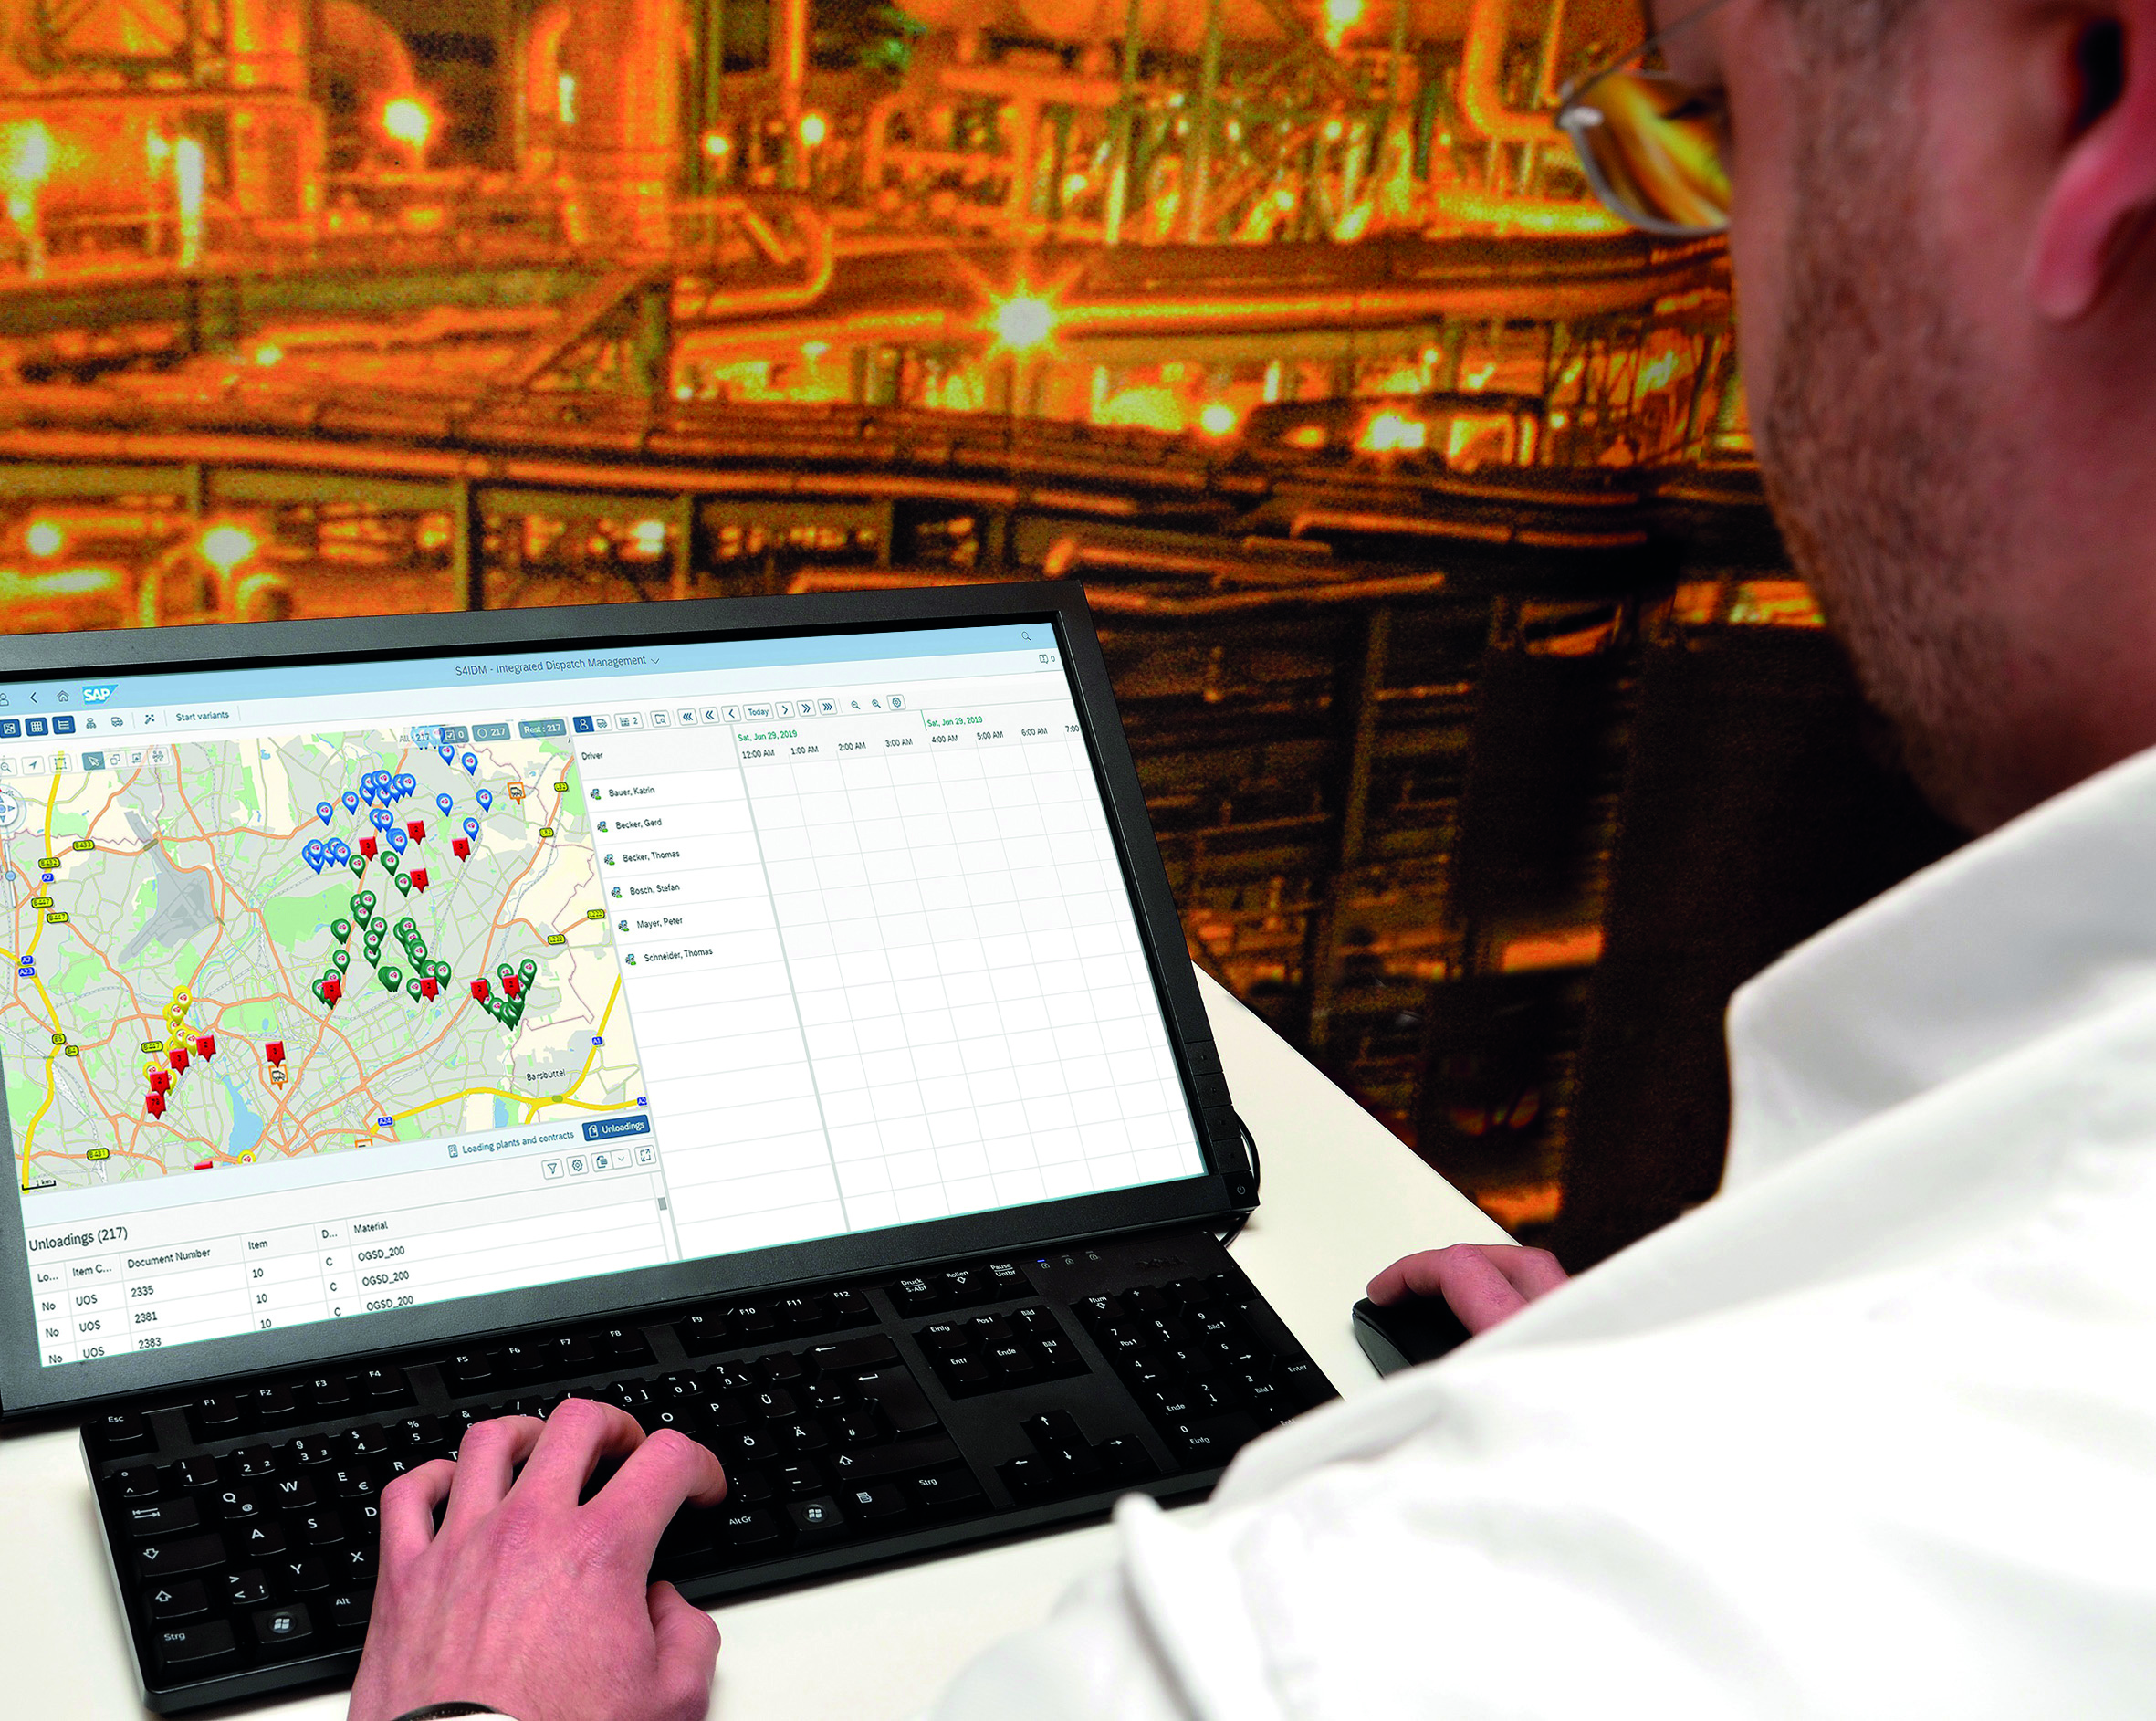 SAP S/4HANA Solutions for Downstream Companies: New Versions Now Available - Featured Image